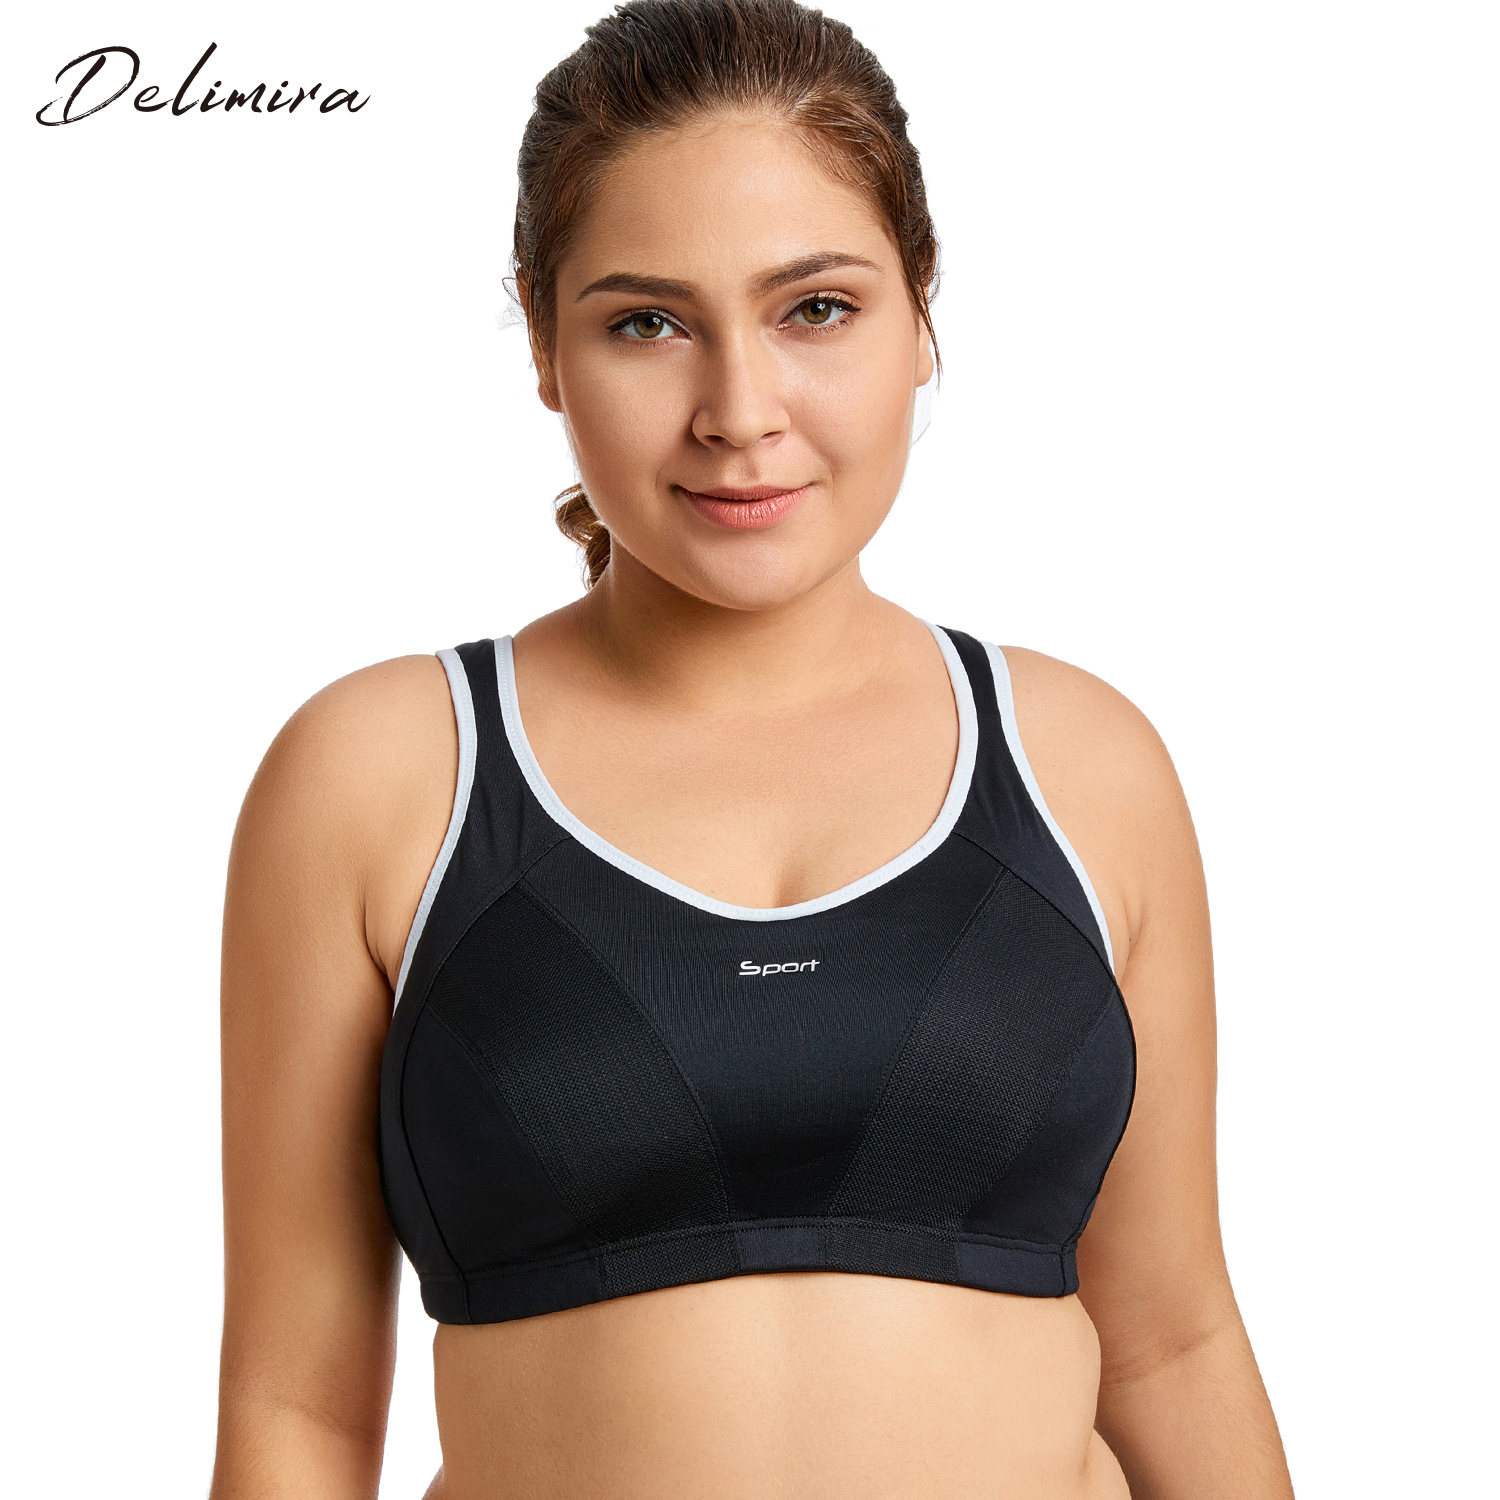 f6df1e26943e6e Women s High Impact No Bounce Full Support Non Padded Racerback Pro  Exercise Bra-in Bras from Underwear   Sleepwears on Aliexpress.com